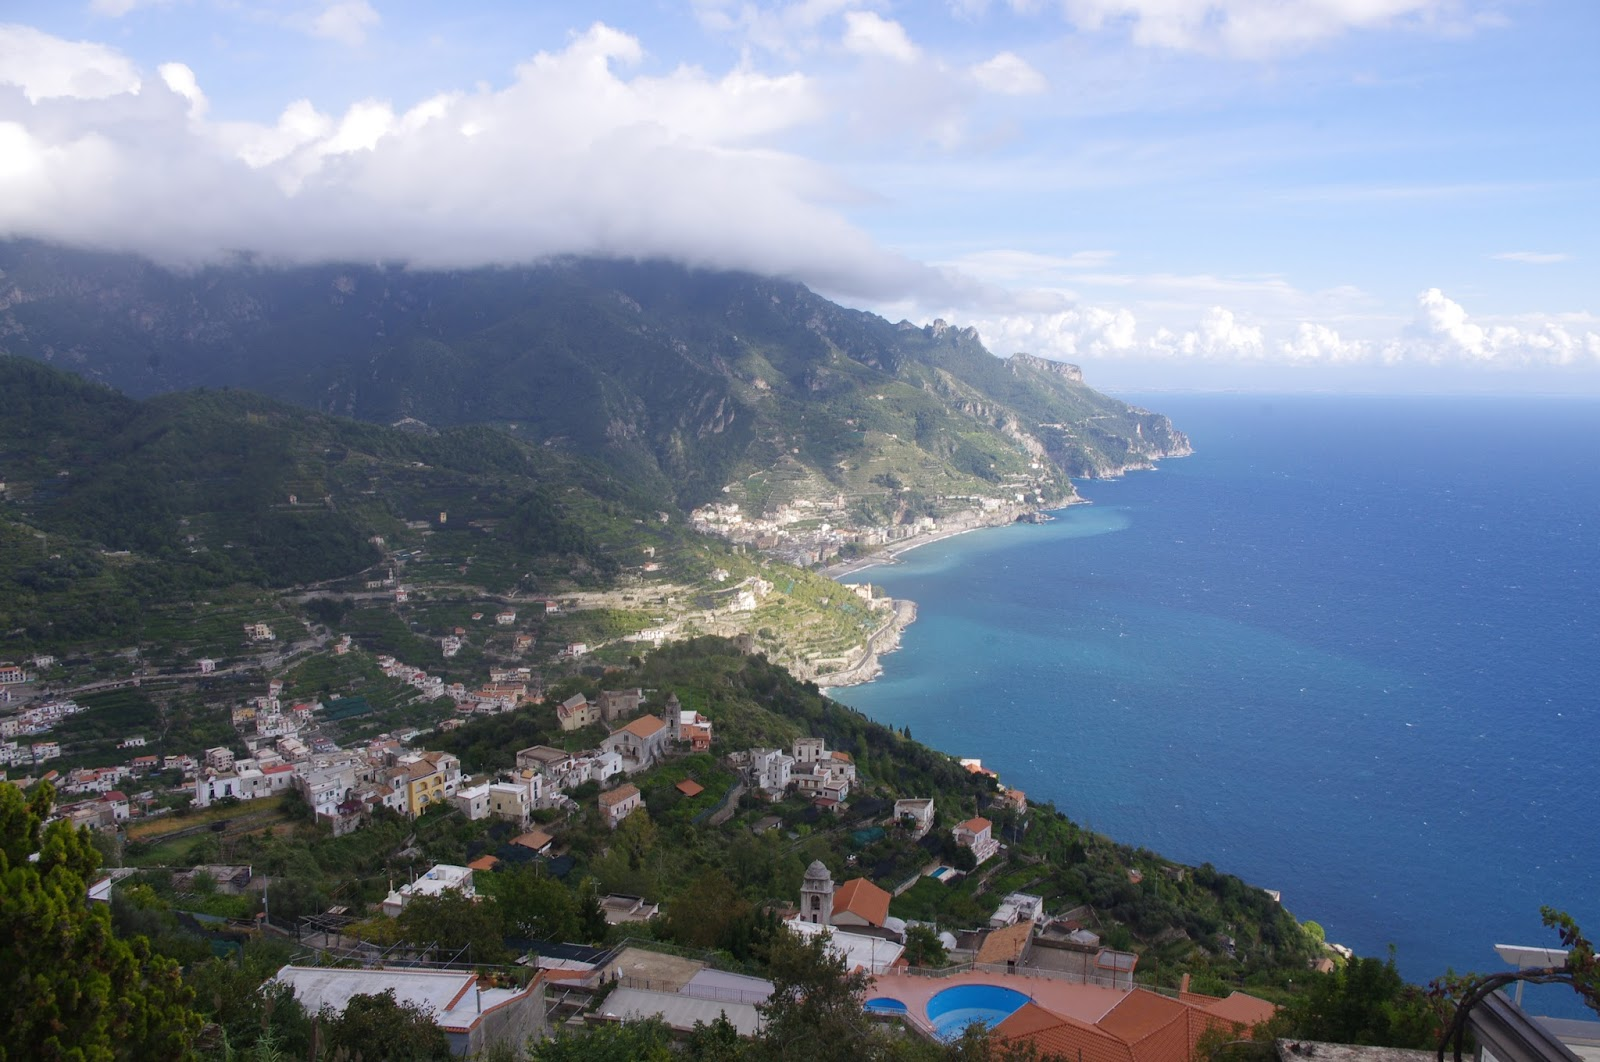 View of Amalfi Coast from Ravello